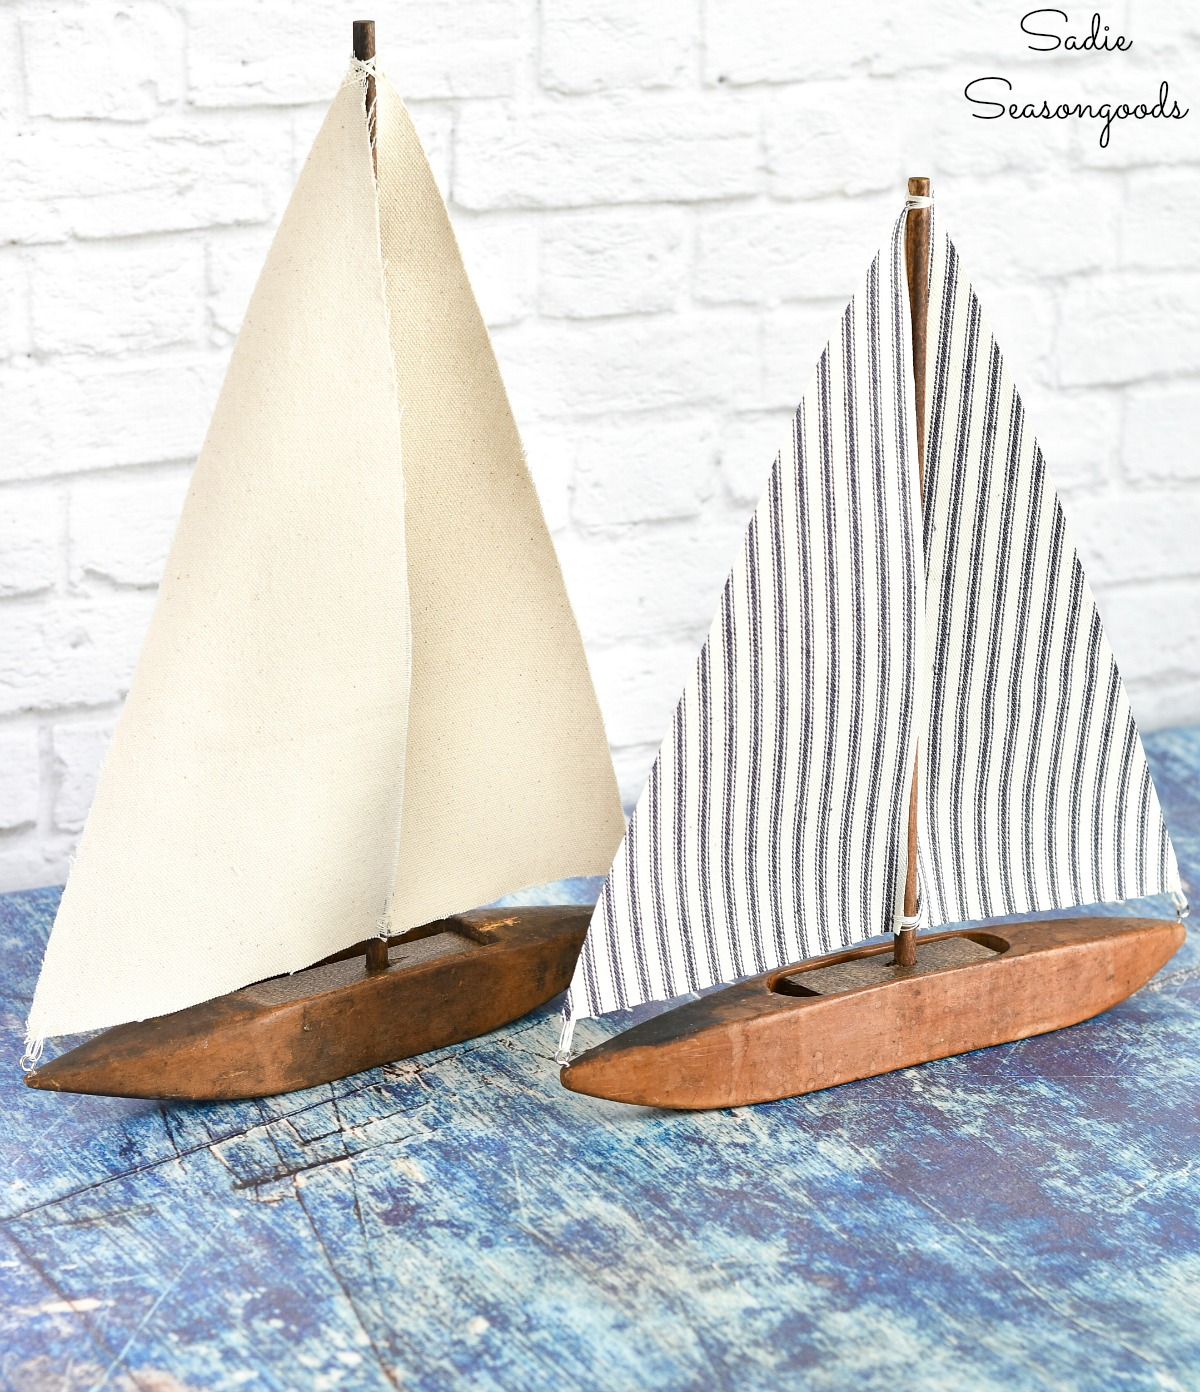 Sailboat decor from a weaving shuttle